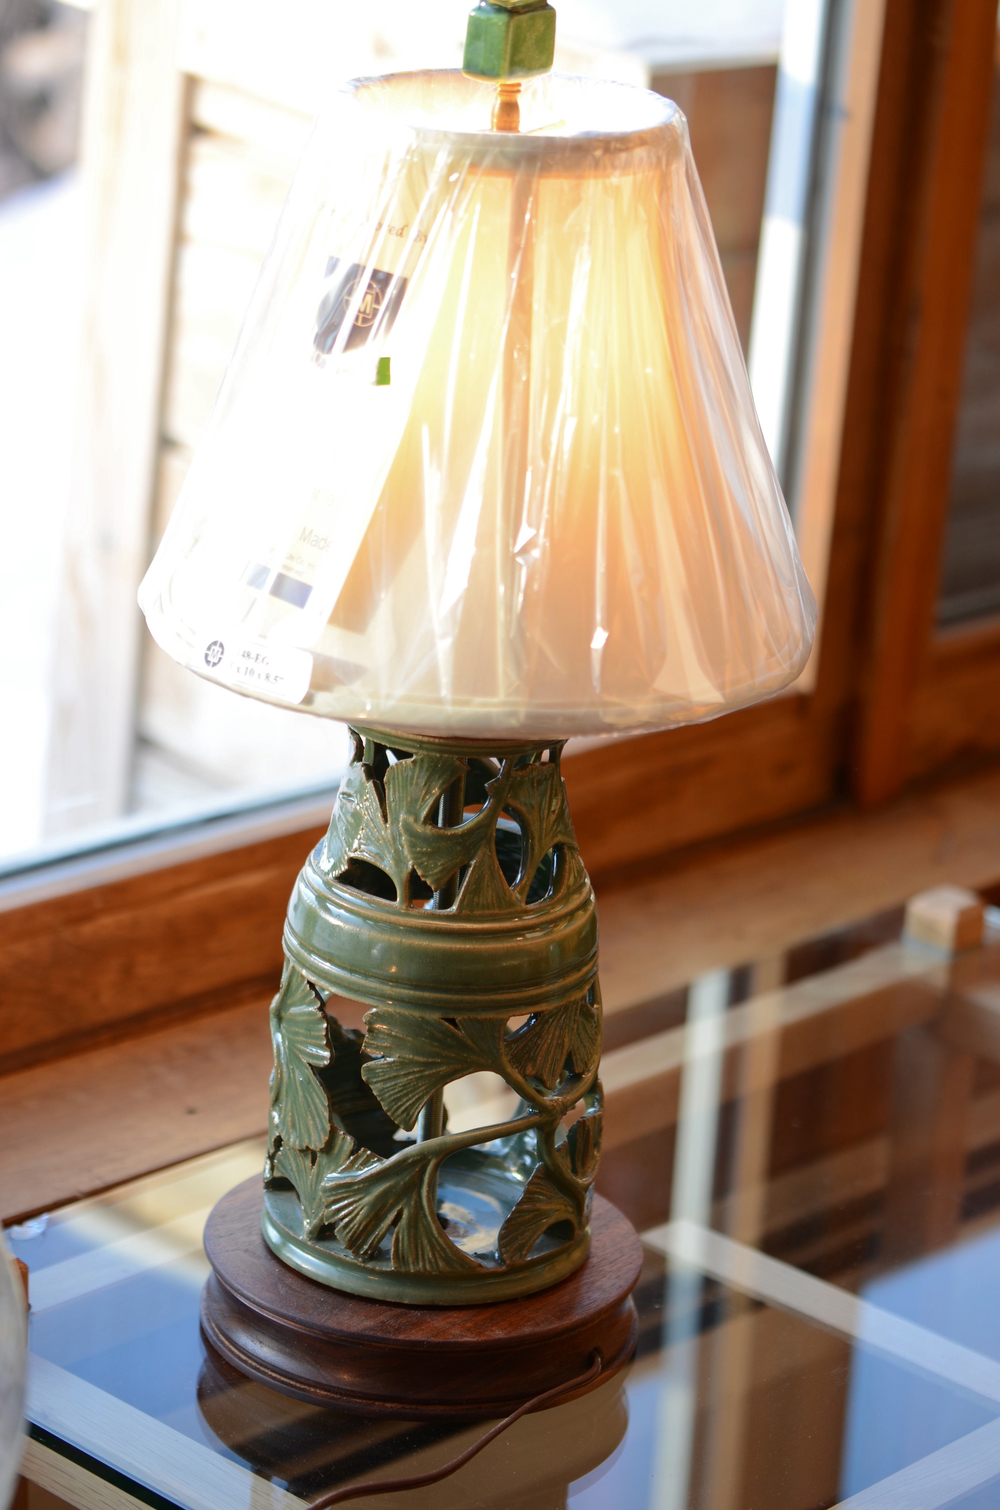 Ginko lamp. Photo by Karen Kopacz.